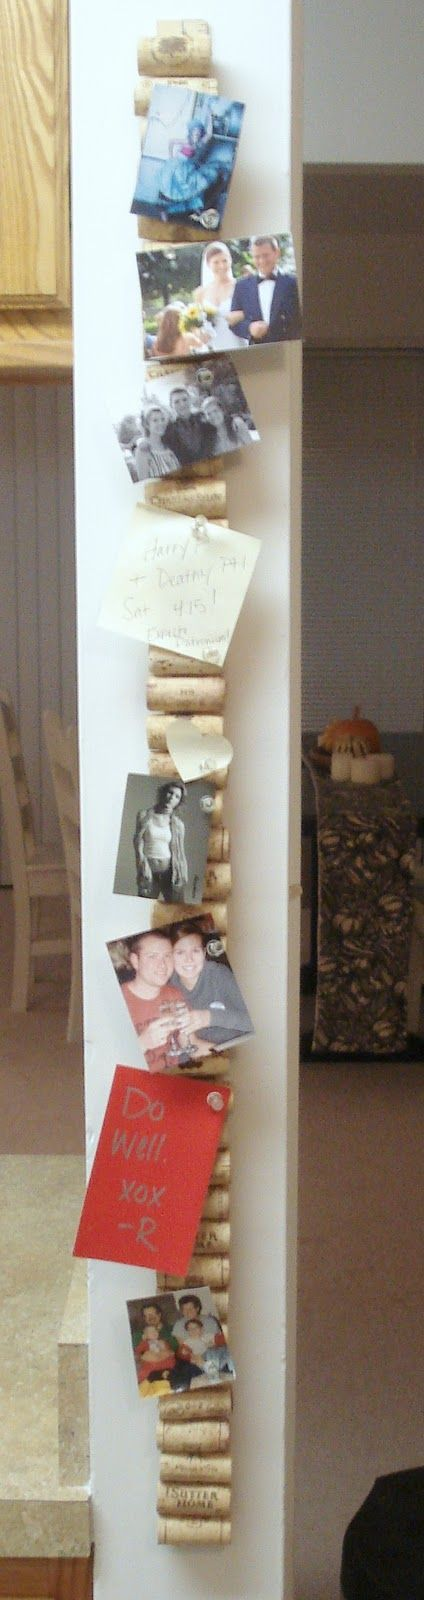 Put corks on a yard stick and you get a vertical cork board - good idea for xmas cards!: Christmas Cards, Wine Corks Boards, Yard Sticks, Idea, Pin Boards, Vertical Corks, Cork Boards, Holidays Cards, Xmas Cards